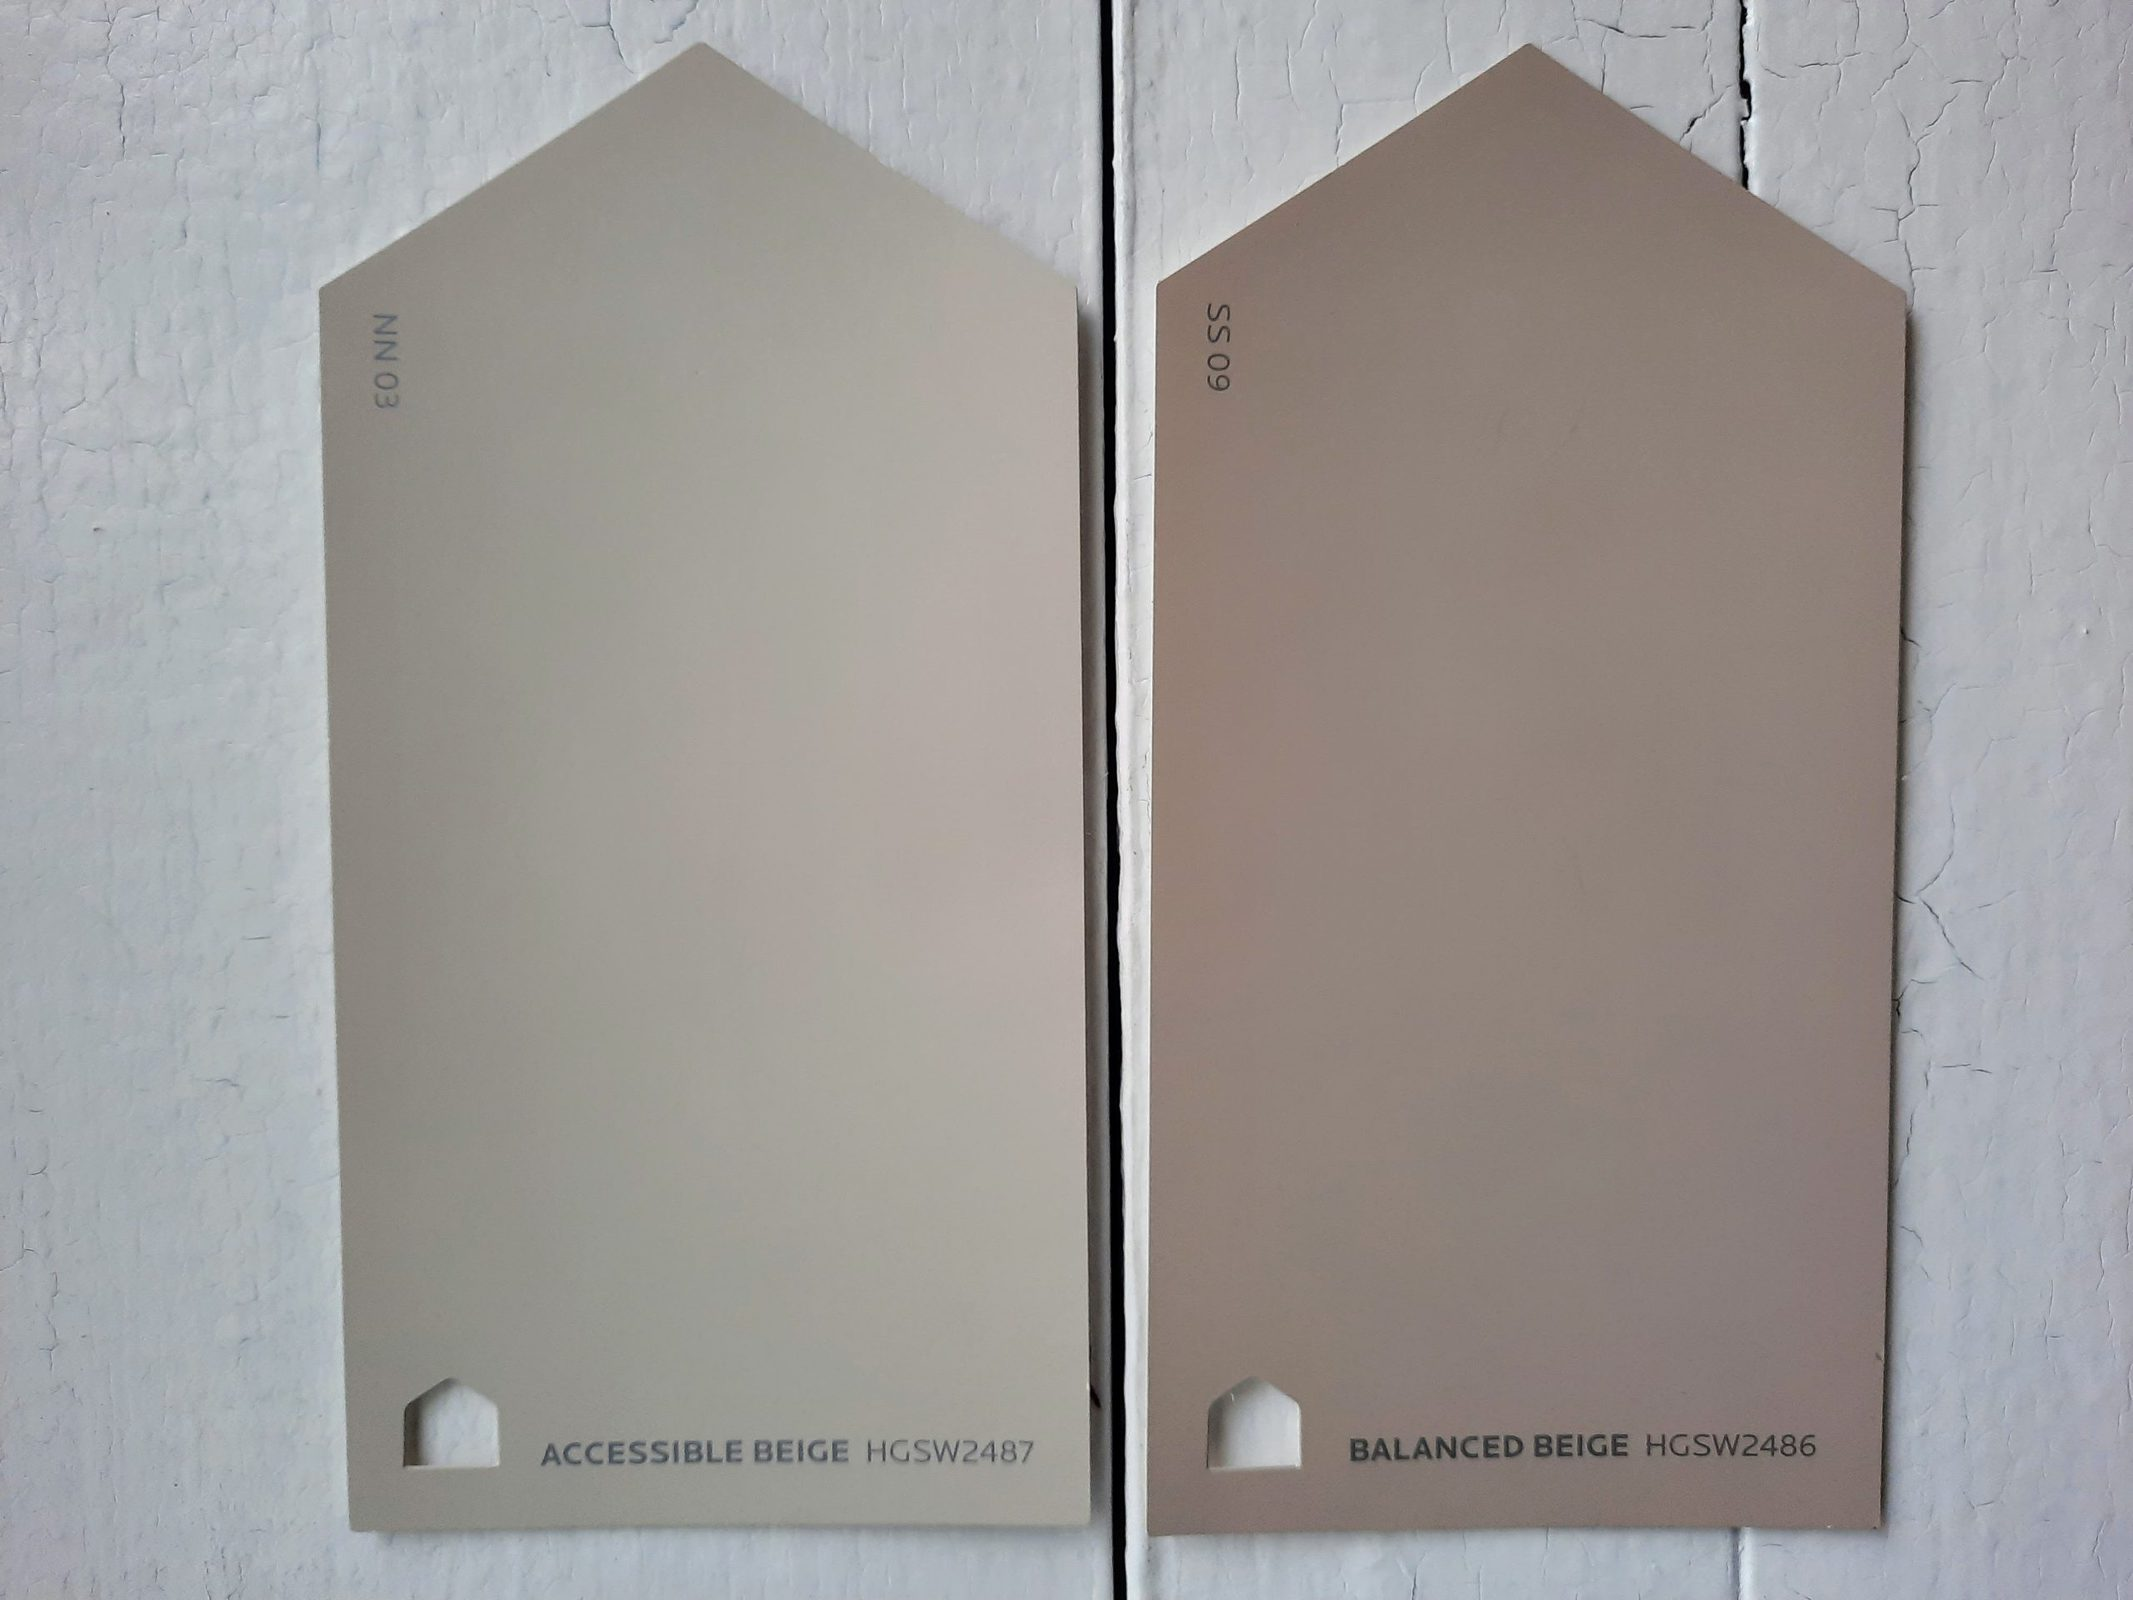 7 Accessible Beige vs Balanced Beige scaled